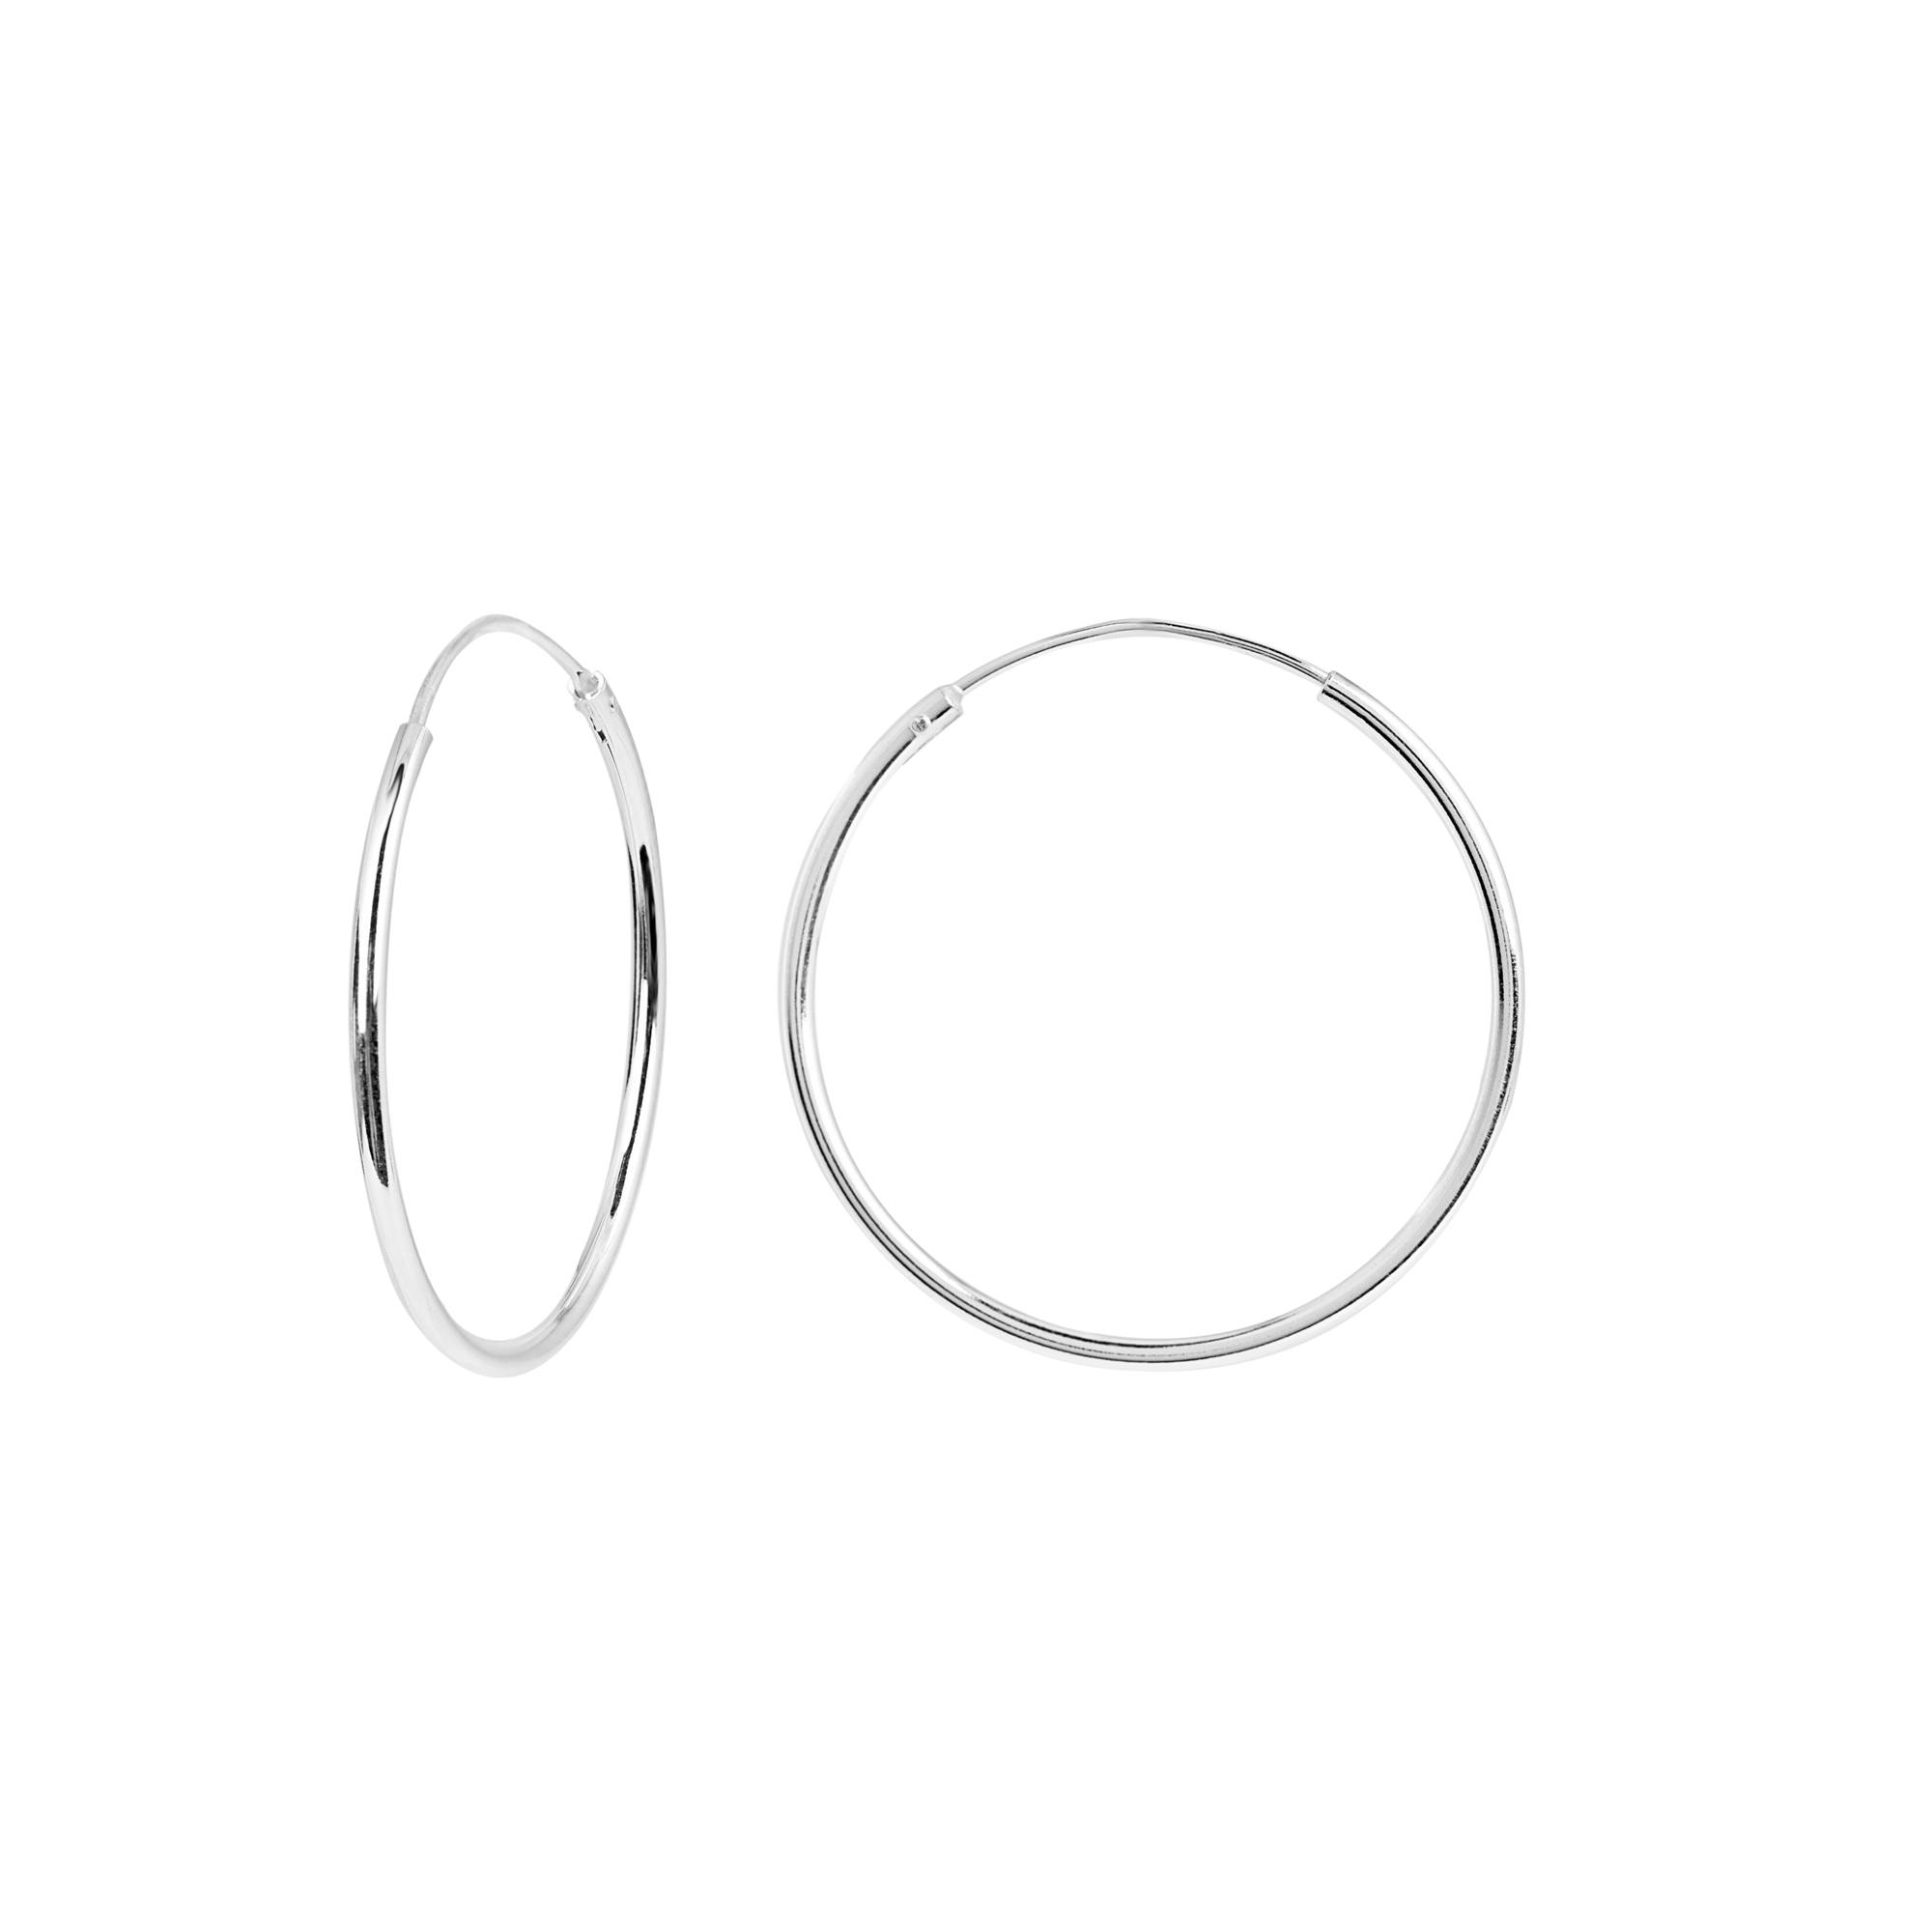 Örhängen i Sterling Silver- Hoops 25 mm